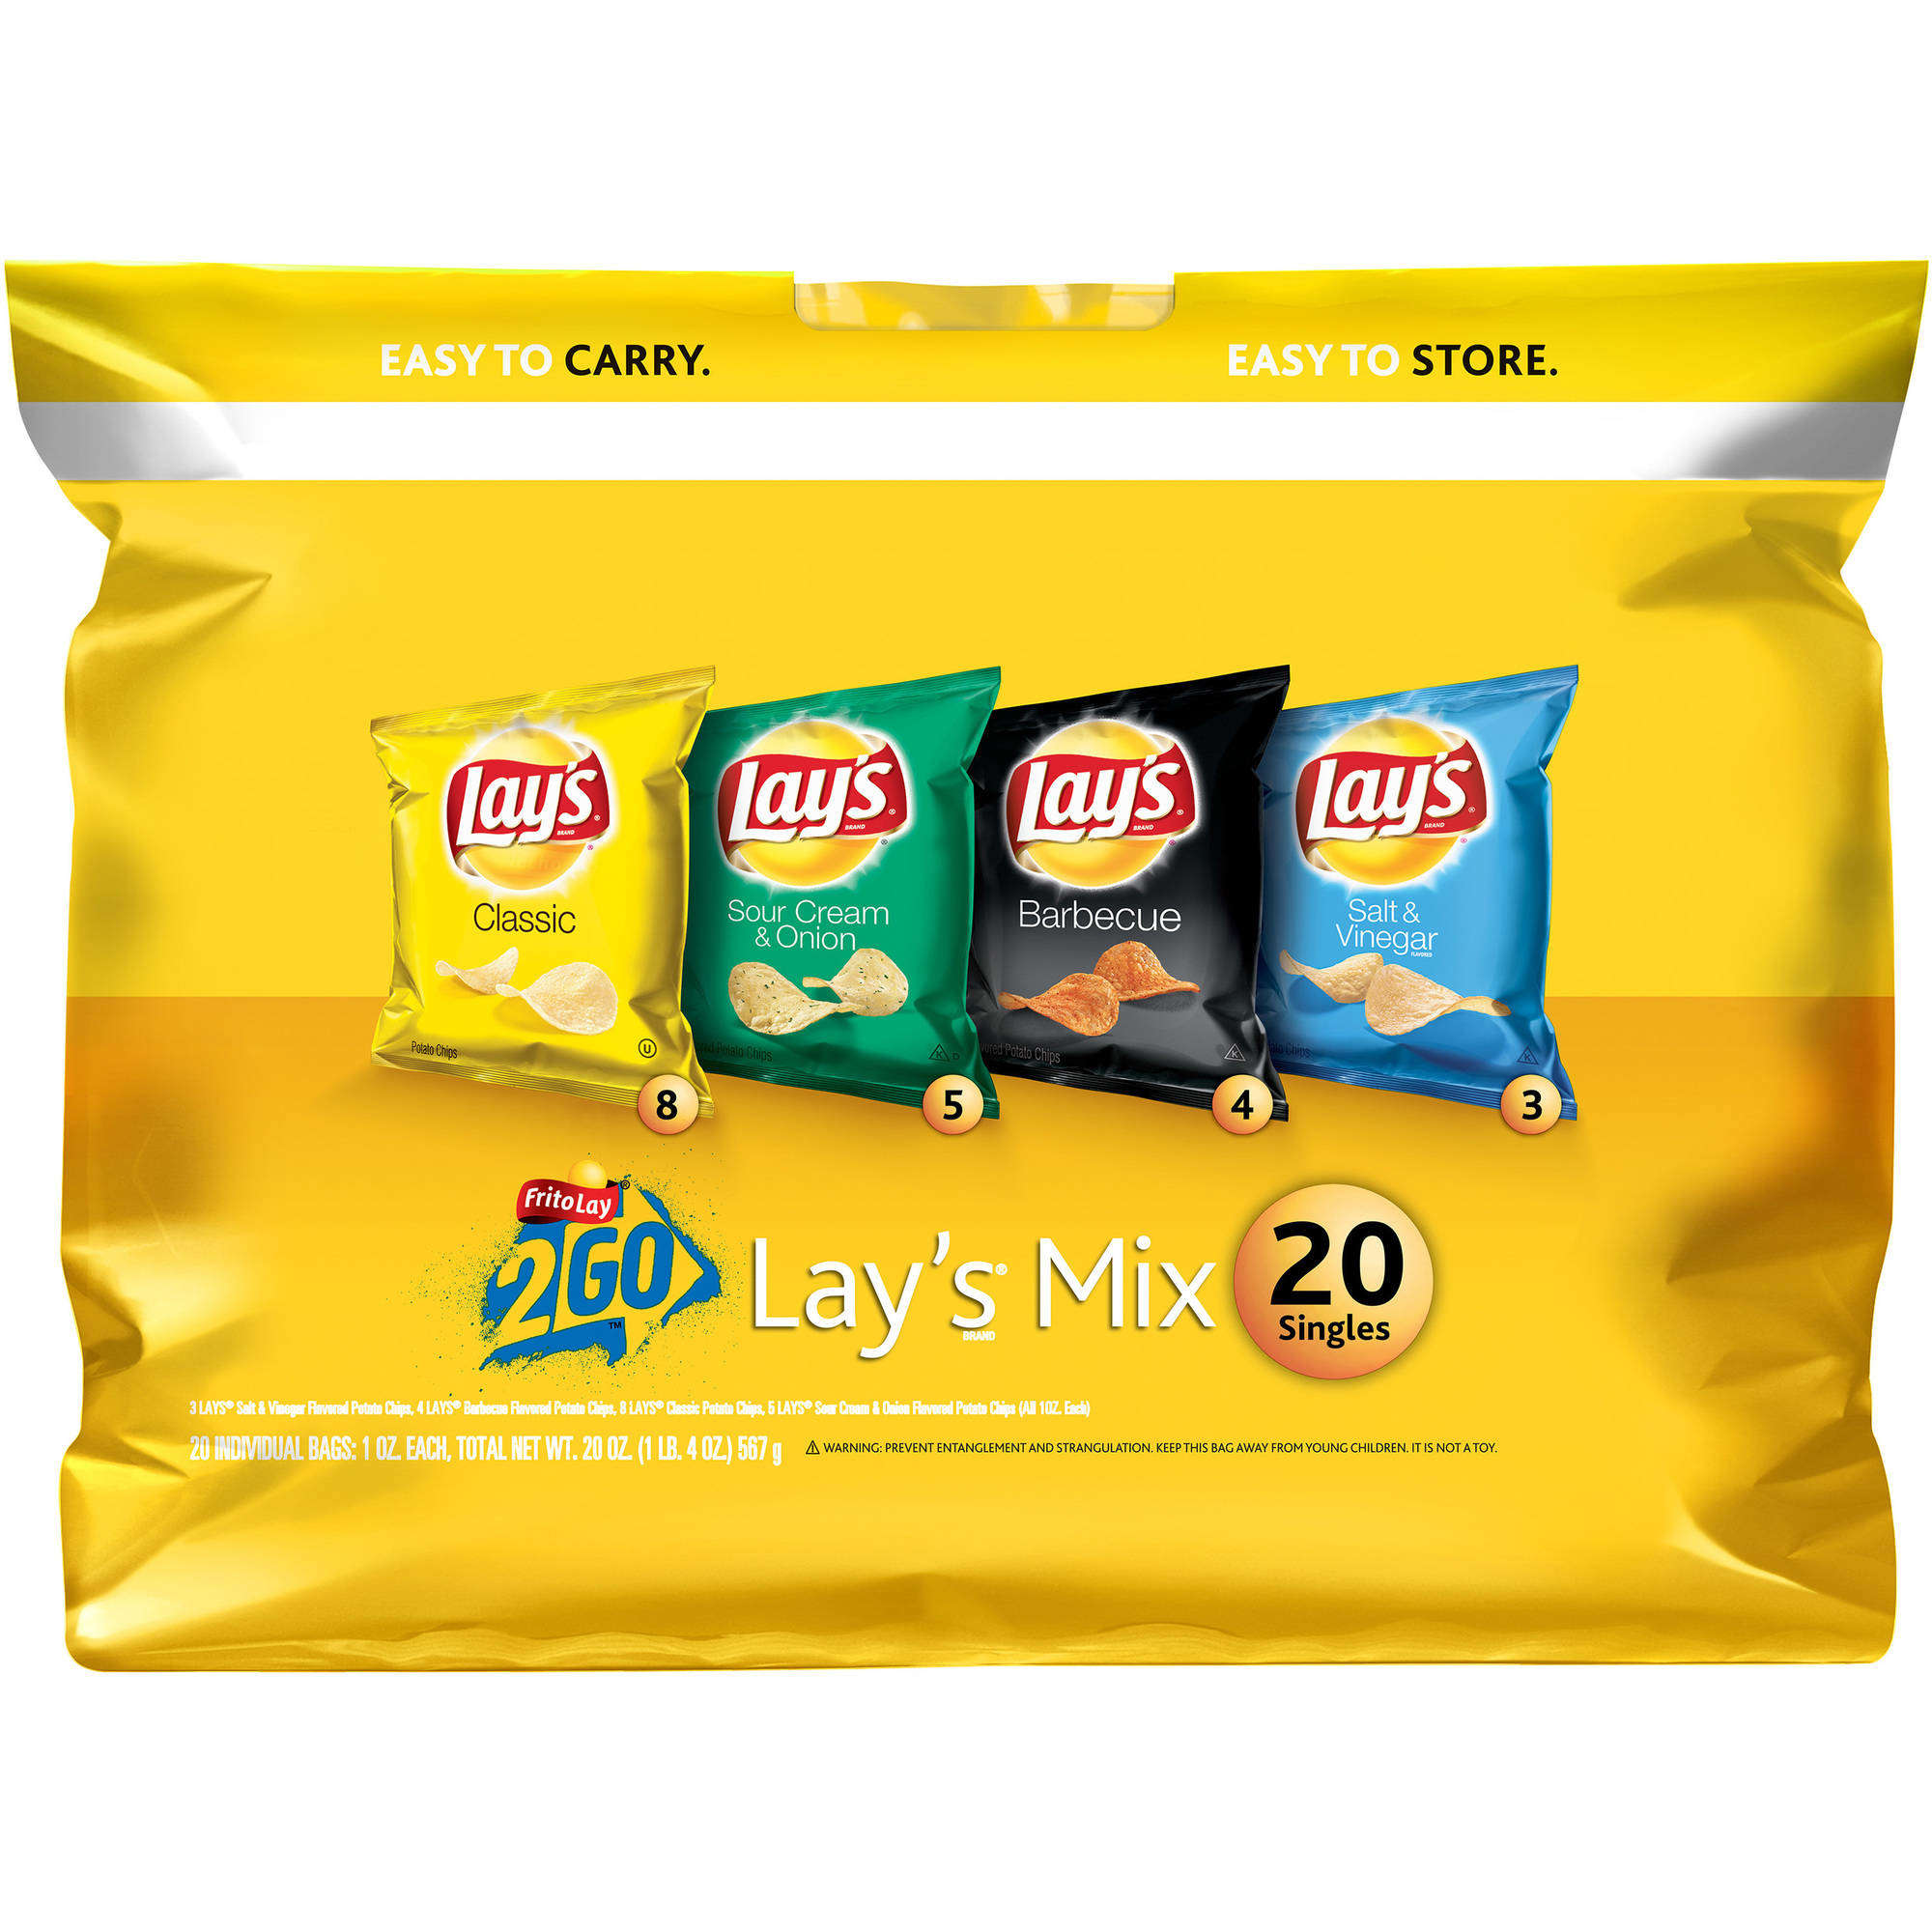 Lay's Mix Potato Chips Variety Pack, 20 Count, 1 oz Bags